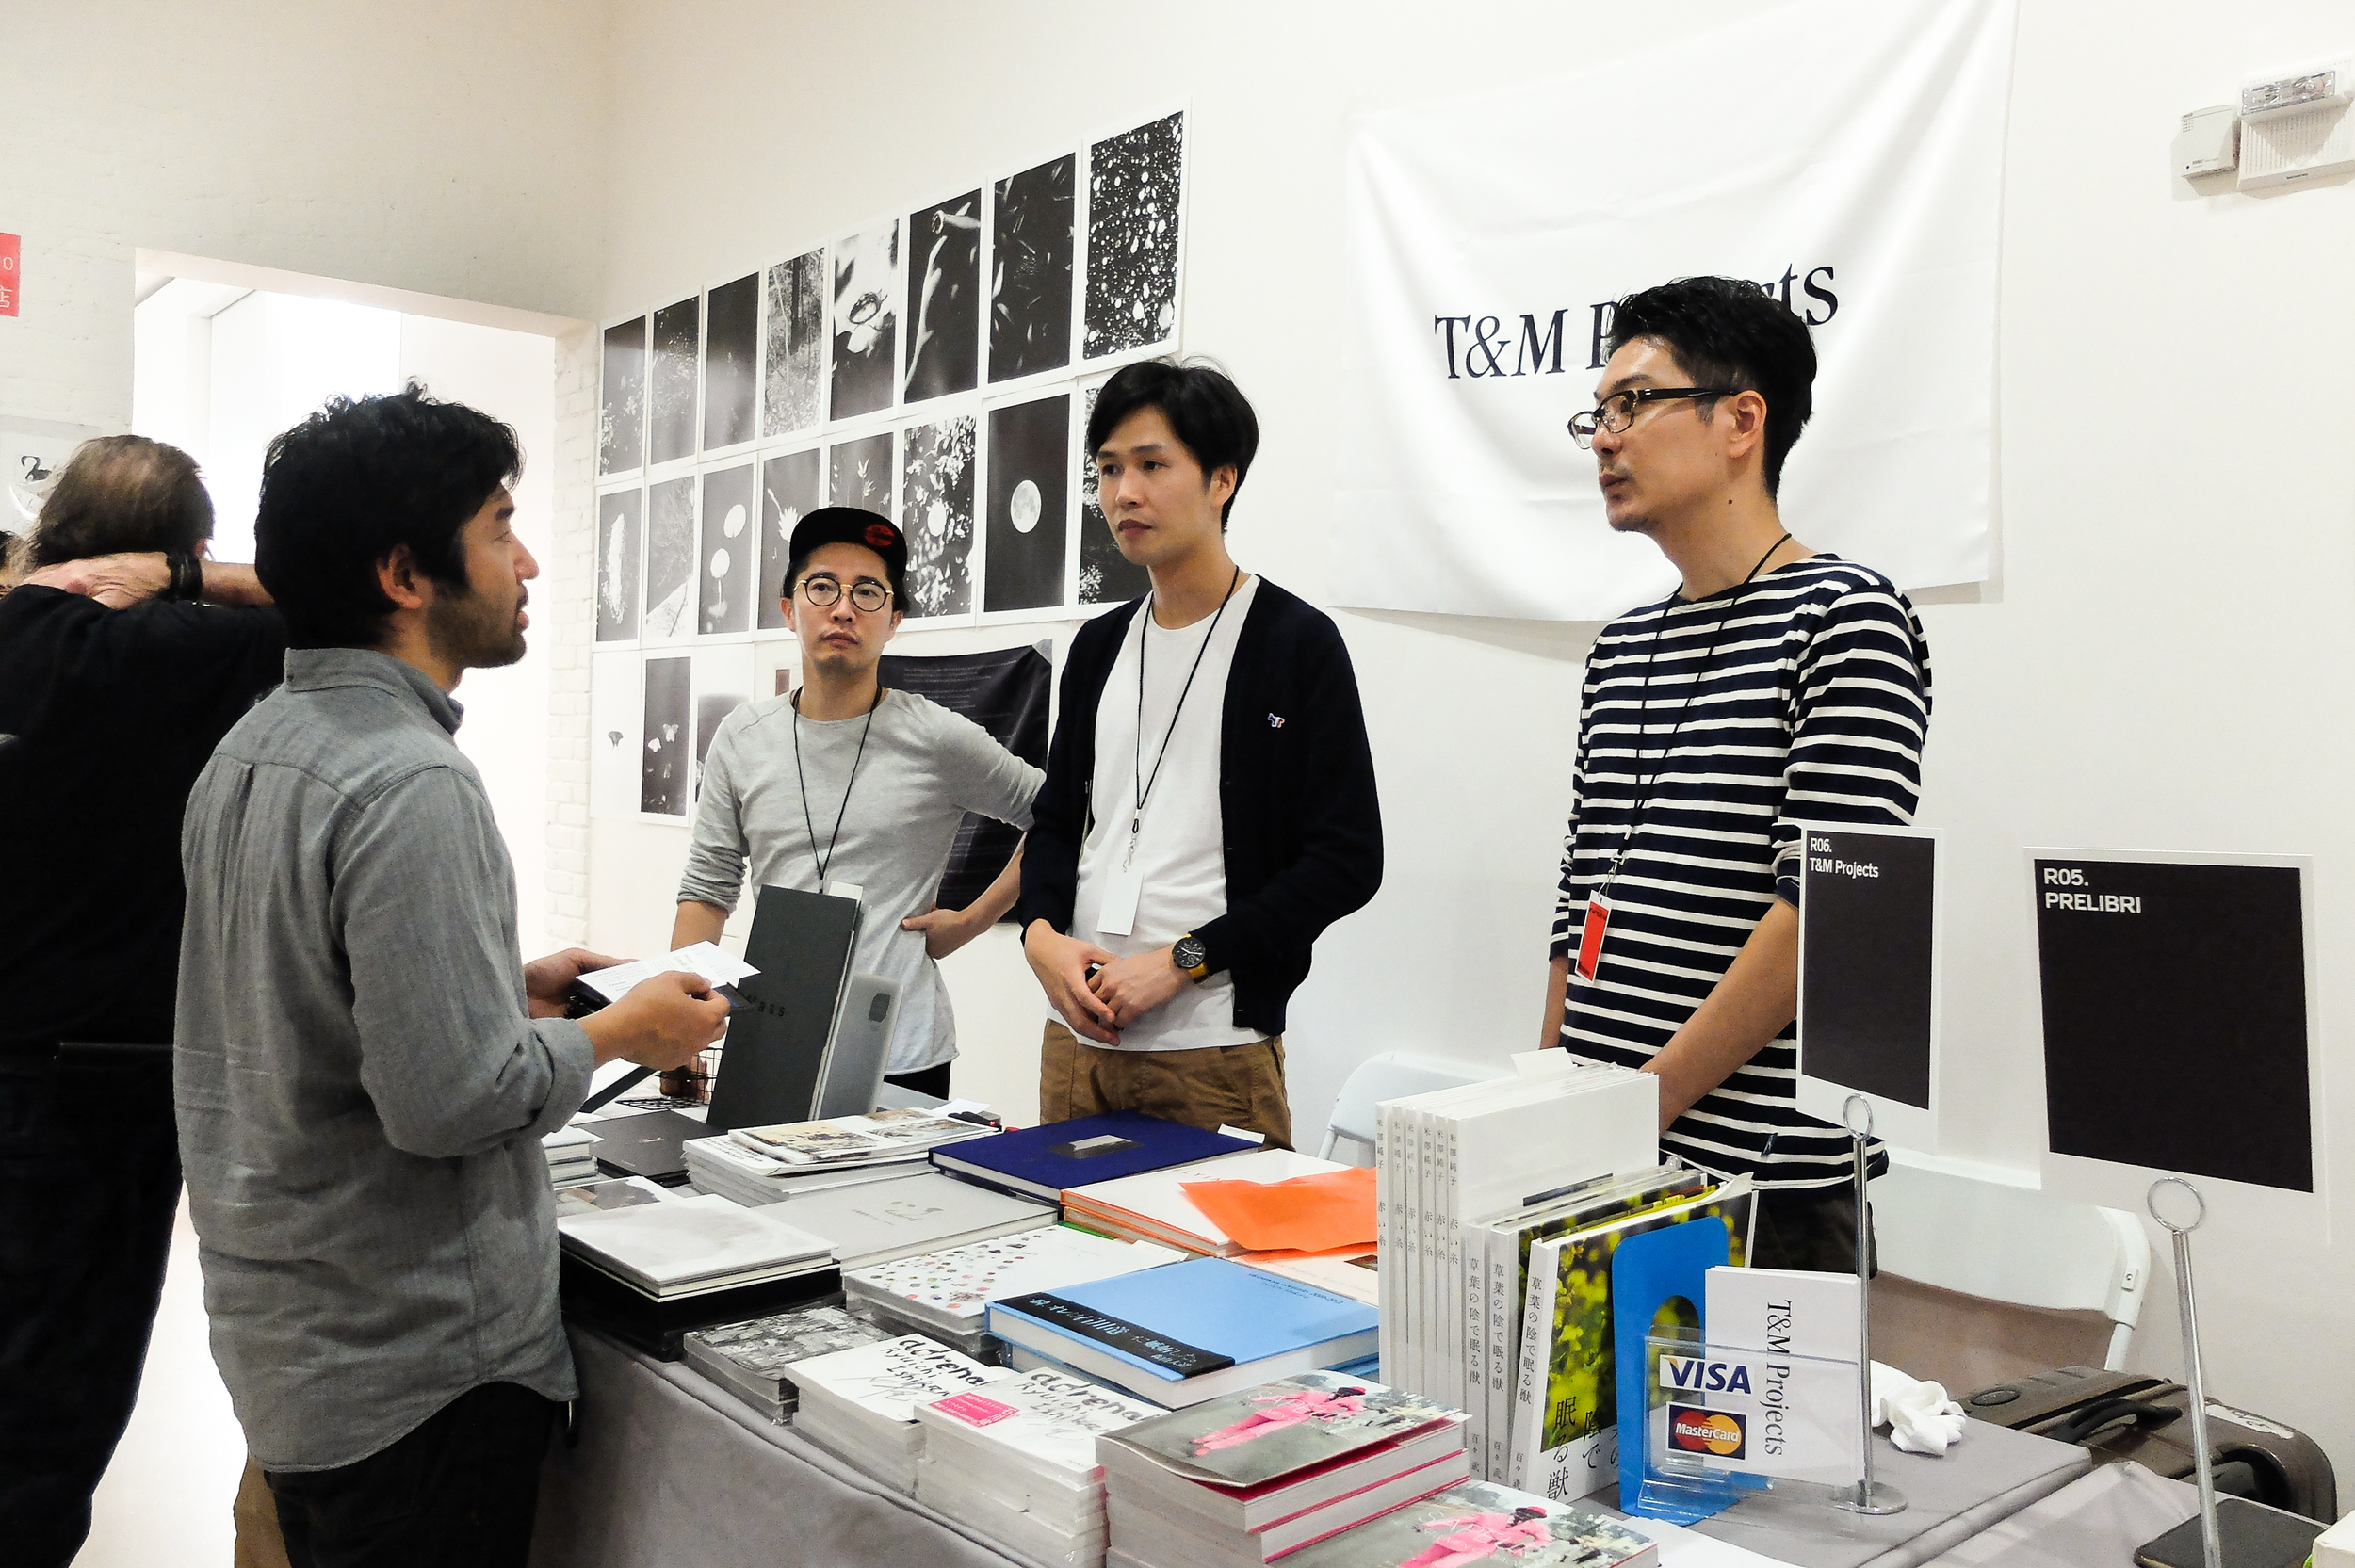 Our founder, Kaz, talking to Takahashi, on right.